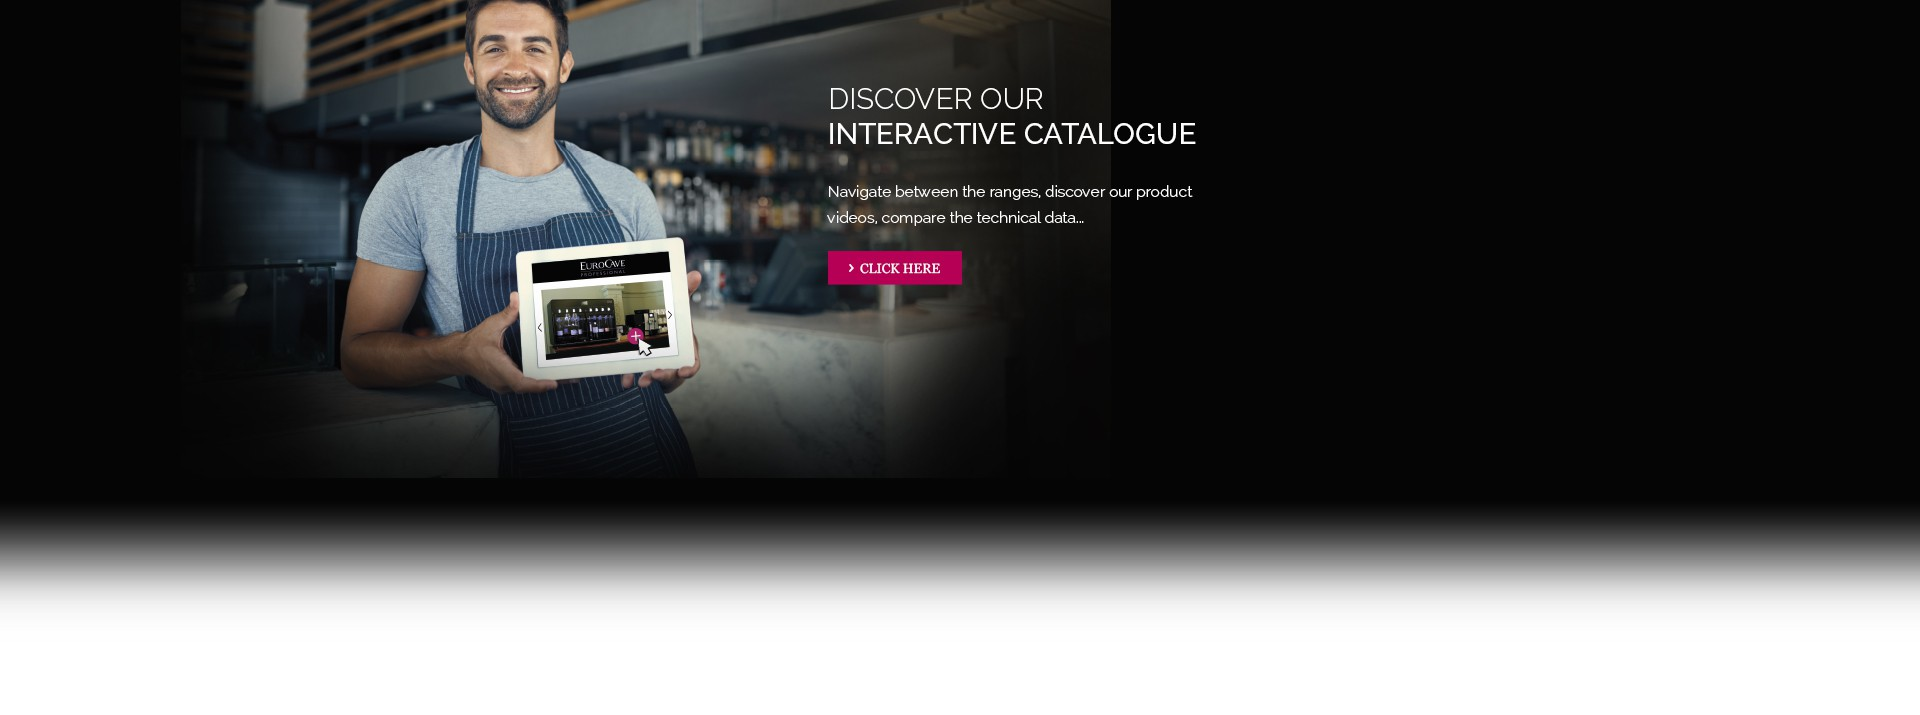 Discover the EuroCave interactive catalogue - wine cabinets, wine dispensers, wine storages, wine showcases, wine conditioners...